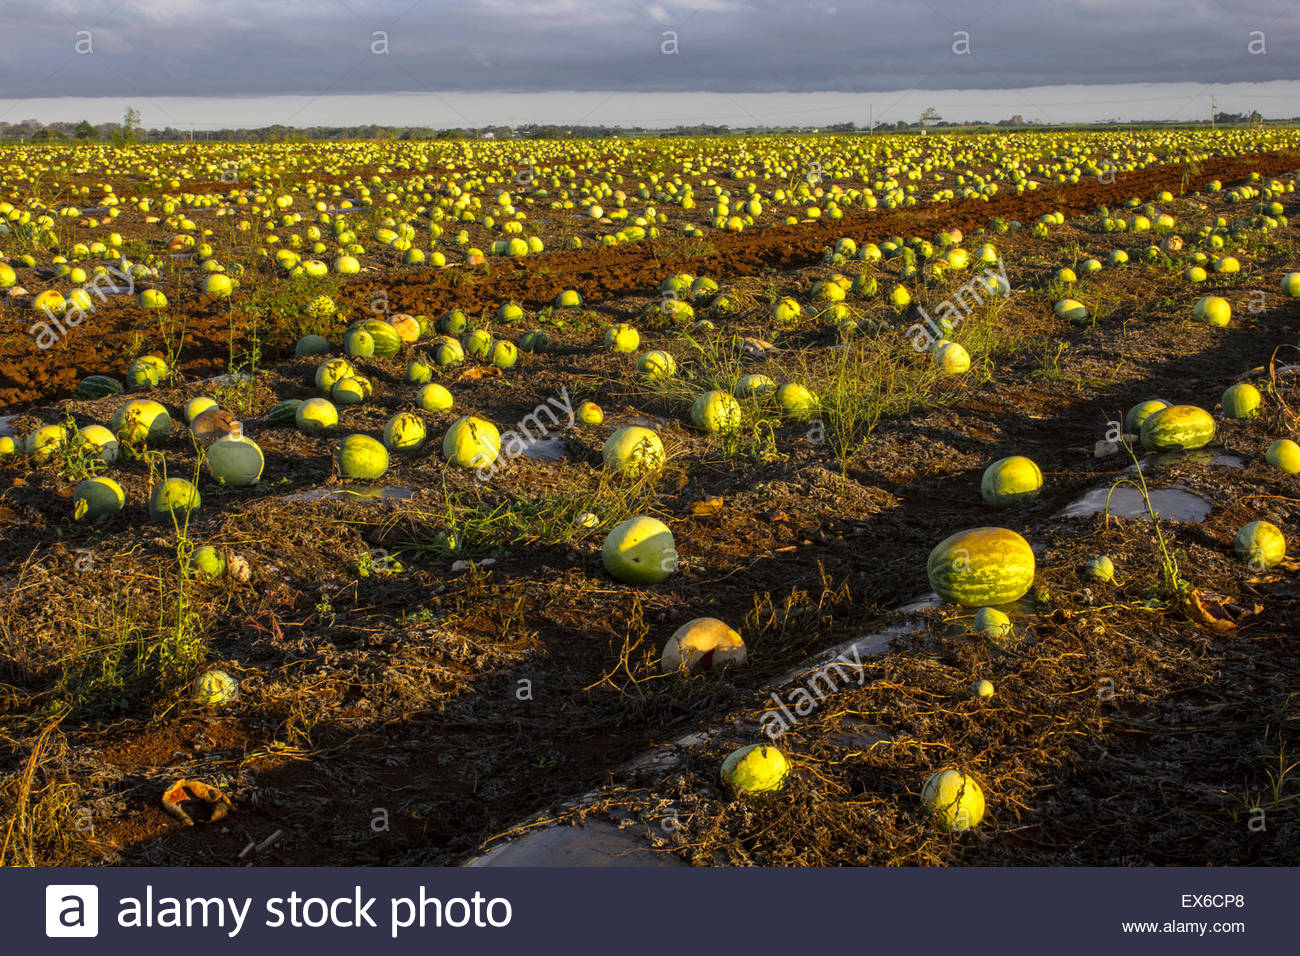 A field containing watermelons left in the field to rot because they are not wanted for sale. - Stock Image